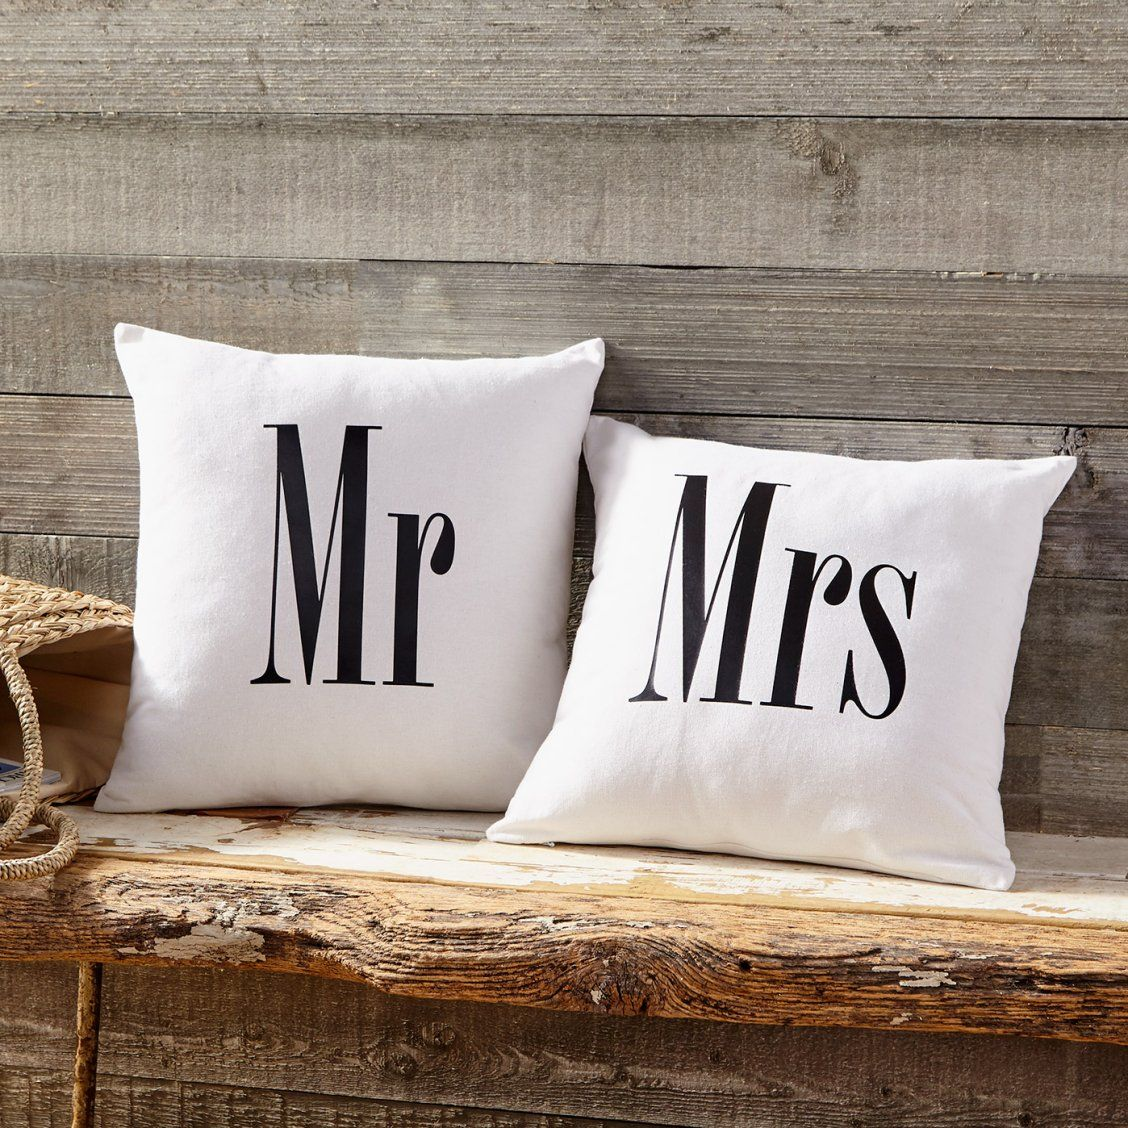 Make Wedding Gift: Make This Personalized Mr. And Mrs. Pillows Project As The